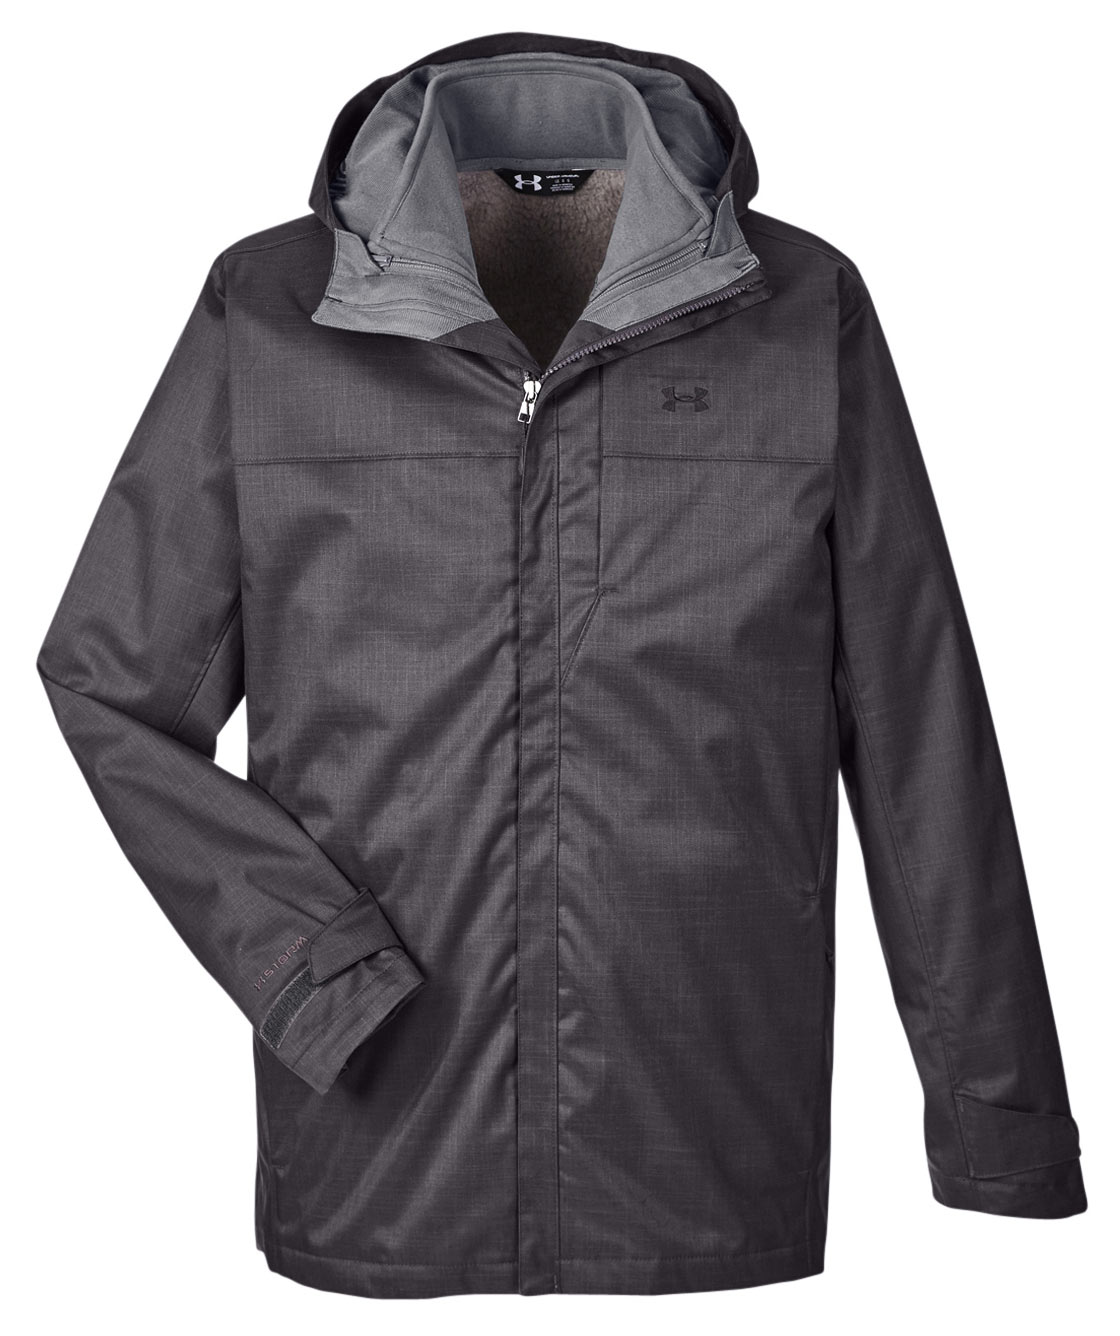 Under Armour Mens UA Porter II 3-in-1 Jacket